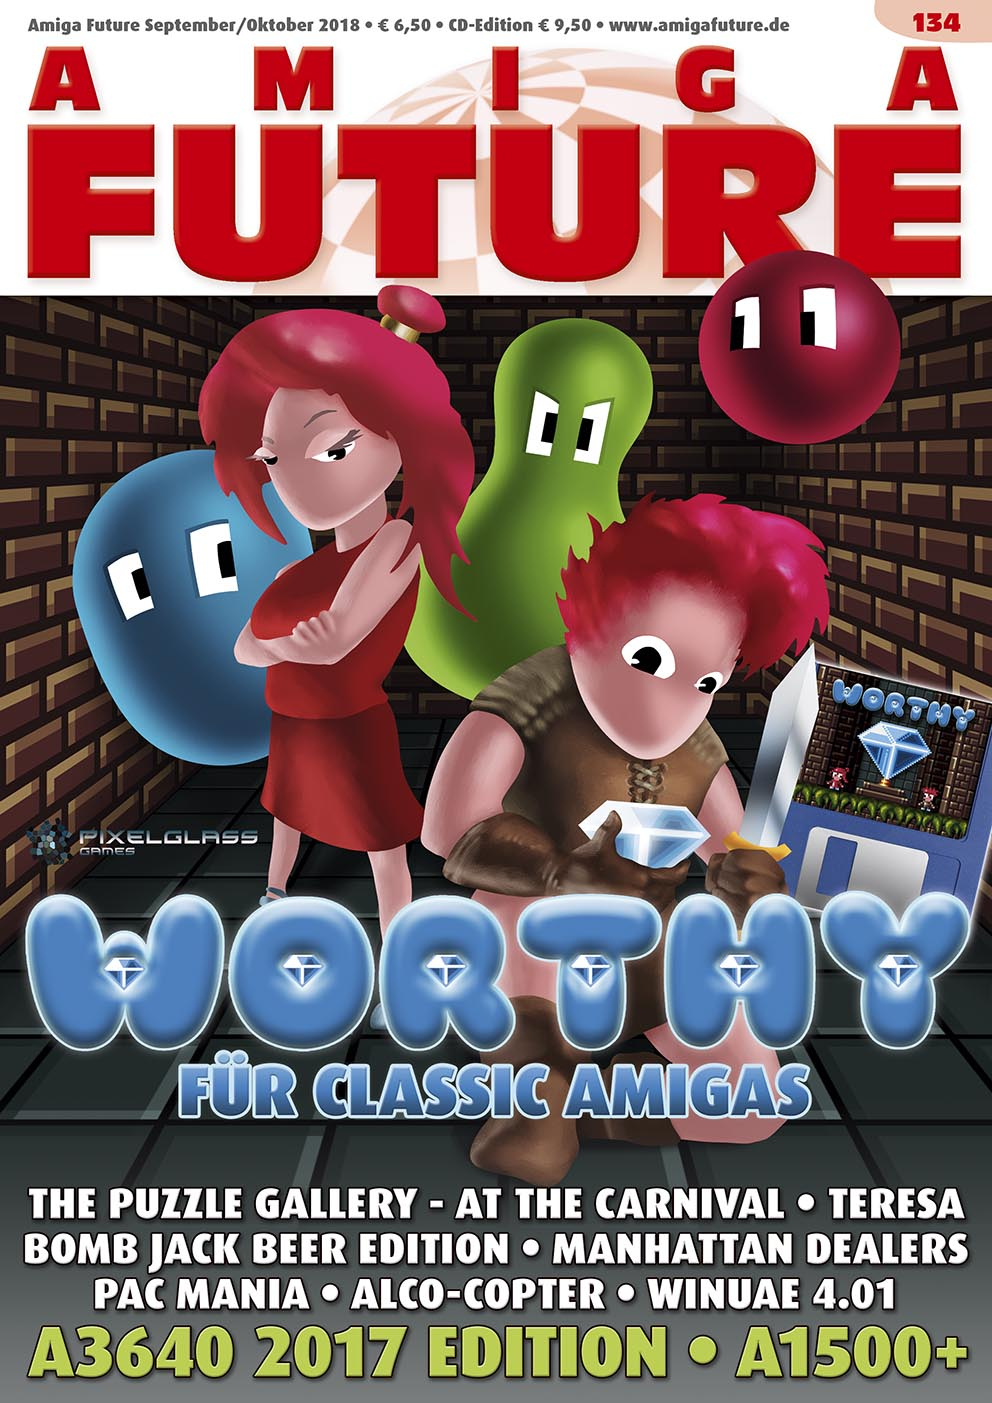 Amiga Future Issue 134